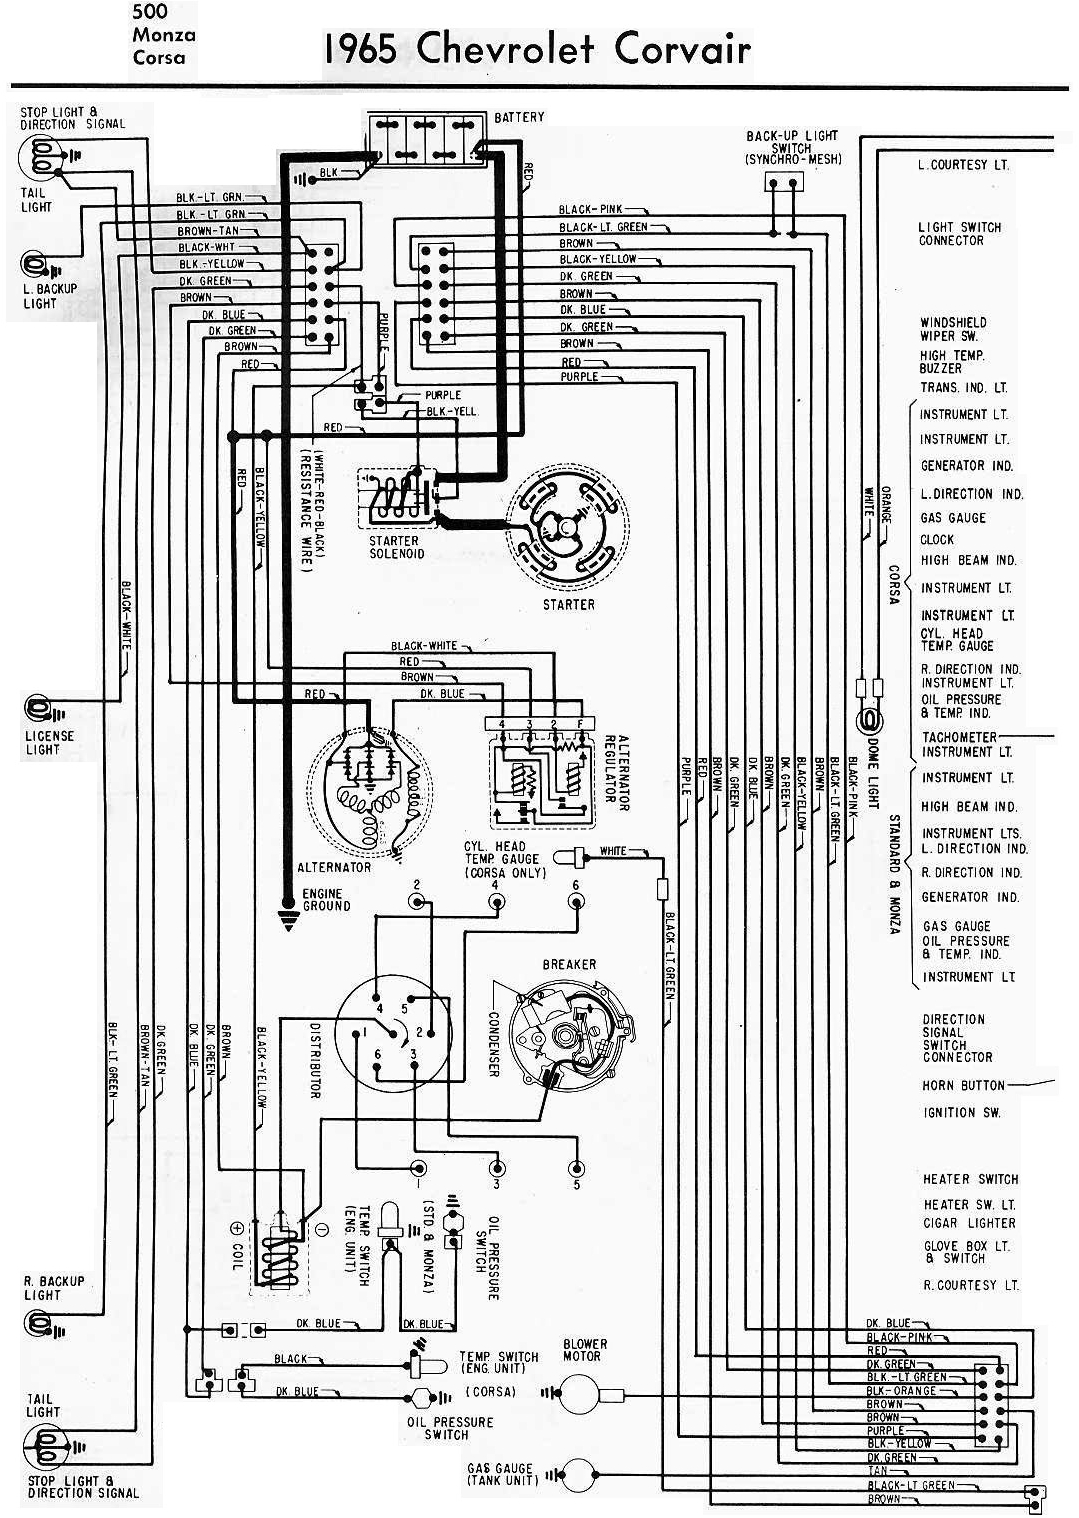 1965+Chevrolet+Corvair+Electrical+Wiring+Diagram 1965 chevrolet corvair electrical wiring diagram all about 1965 corvair wiring diagram at aneh.co